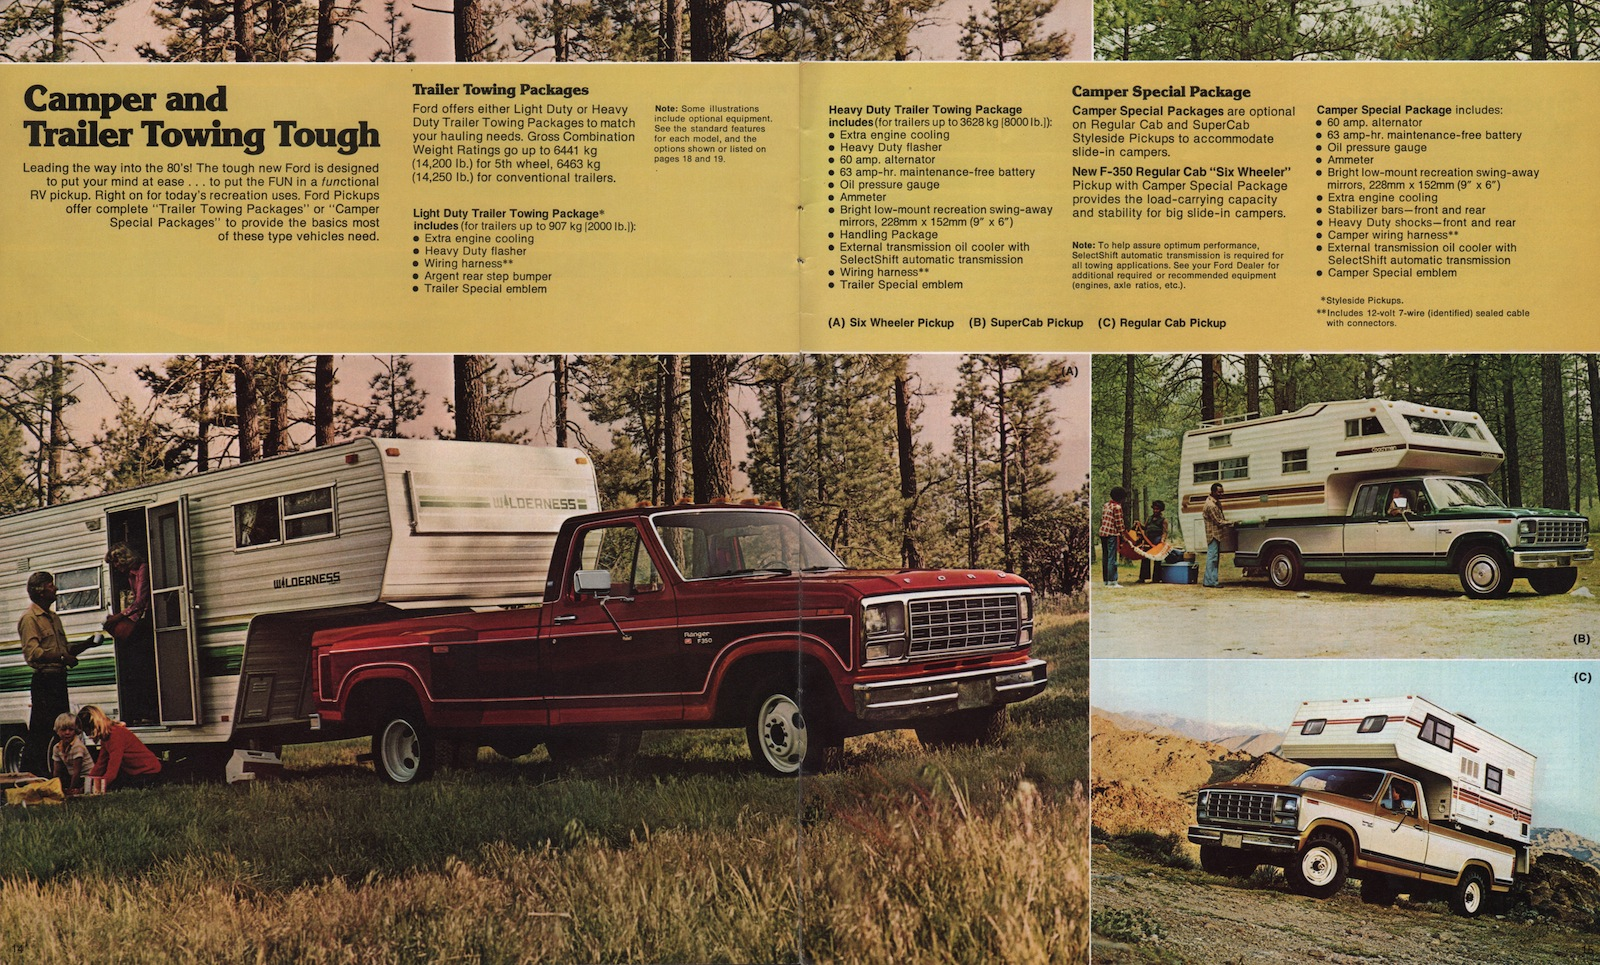 1980 pickup ford truck sales brochure 2011 Ford Mustang Ford Mustang Advertisements